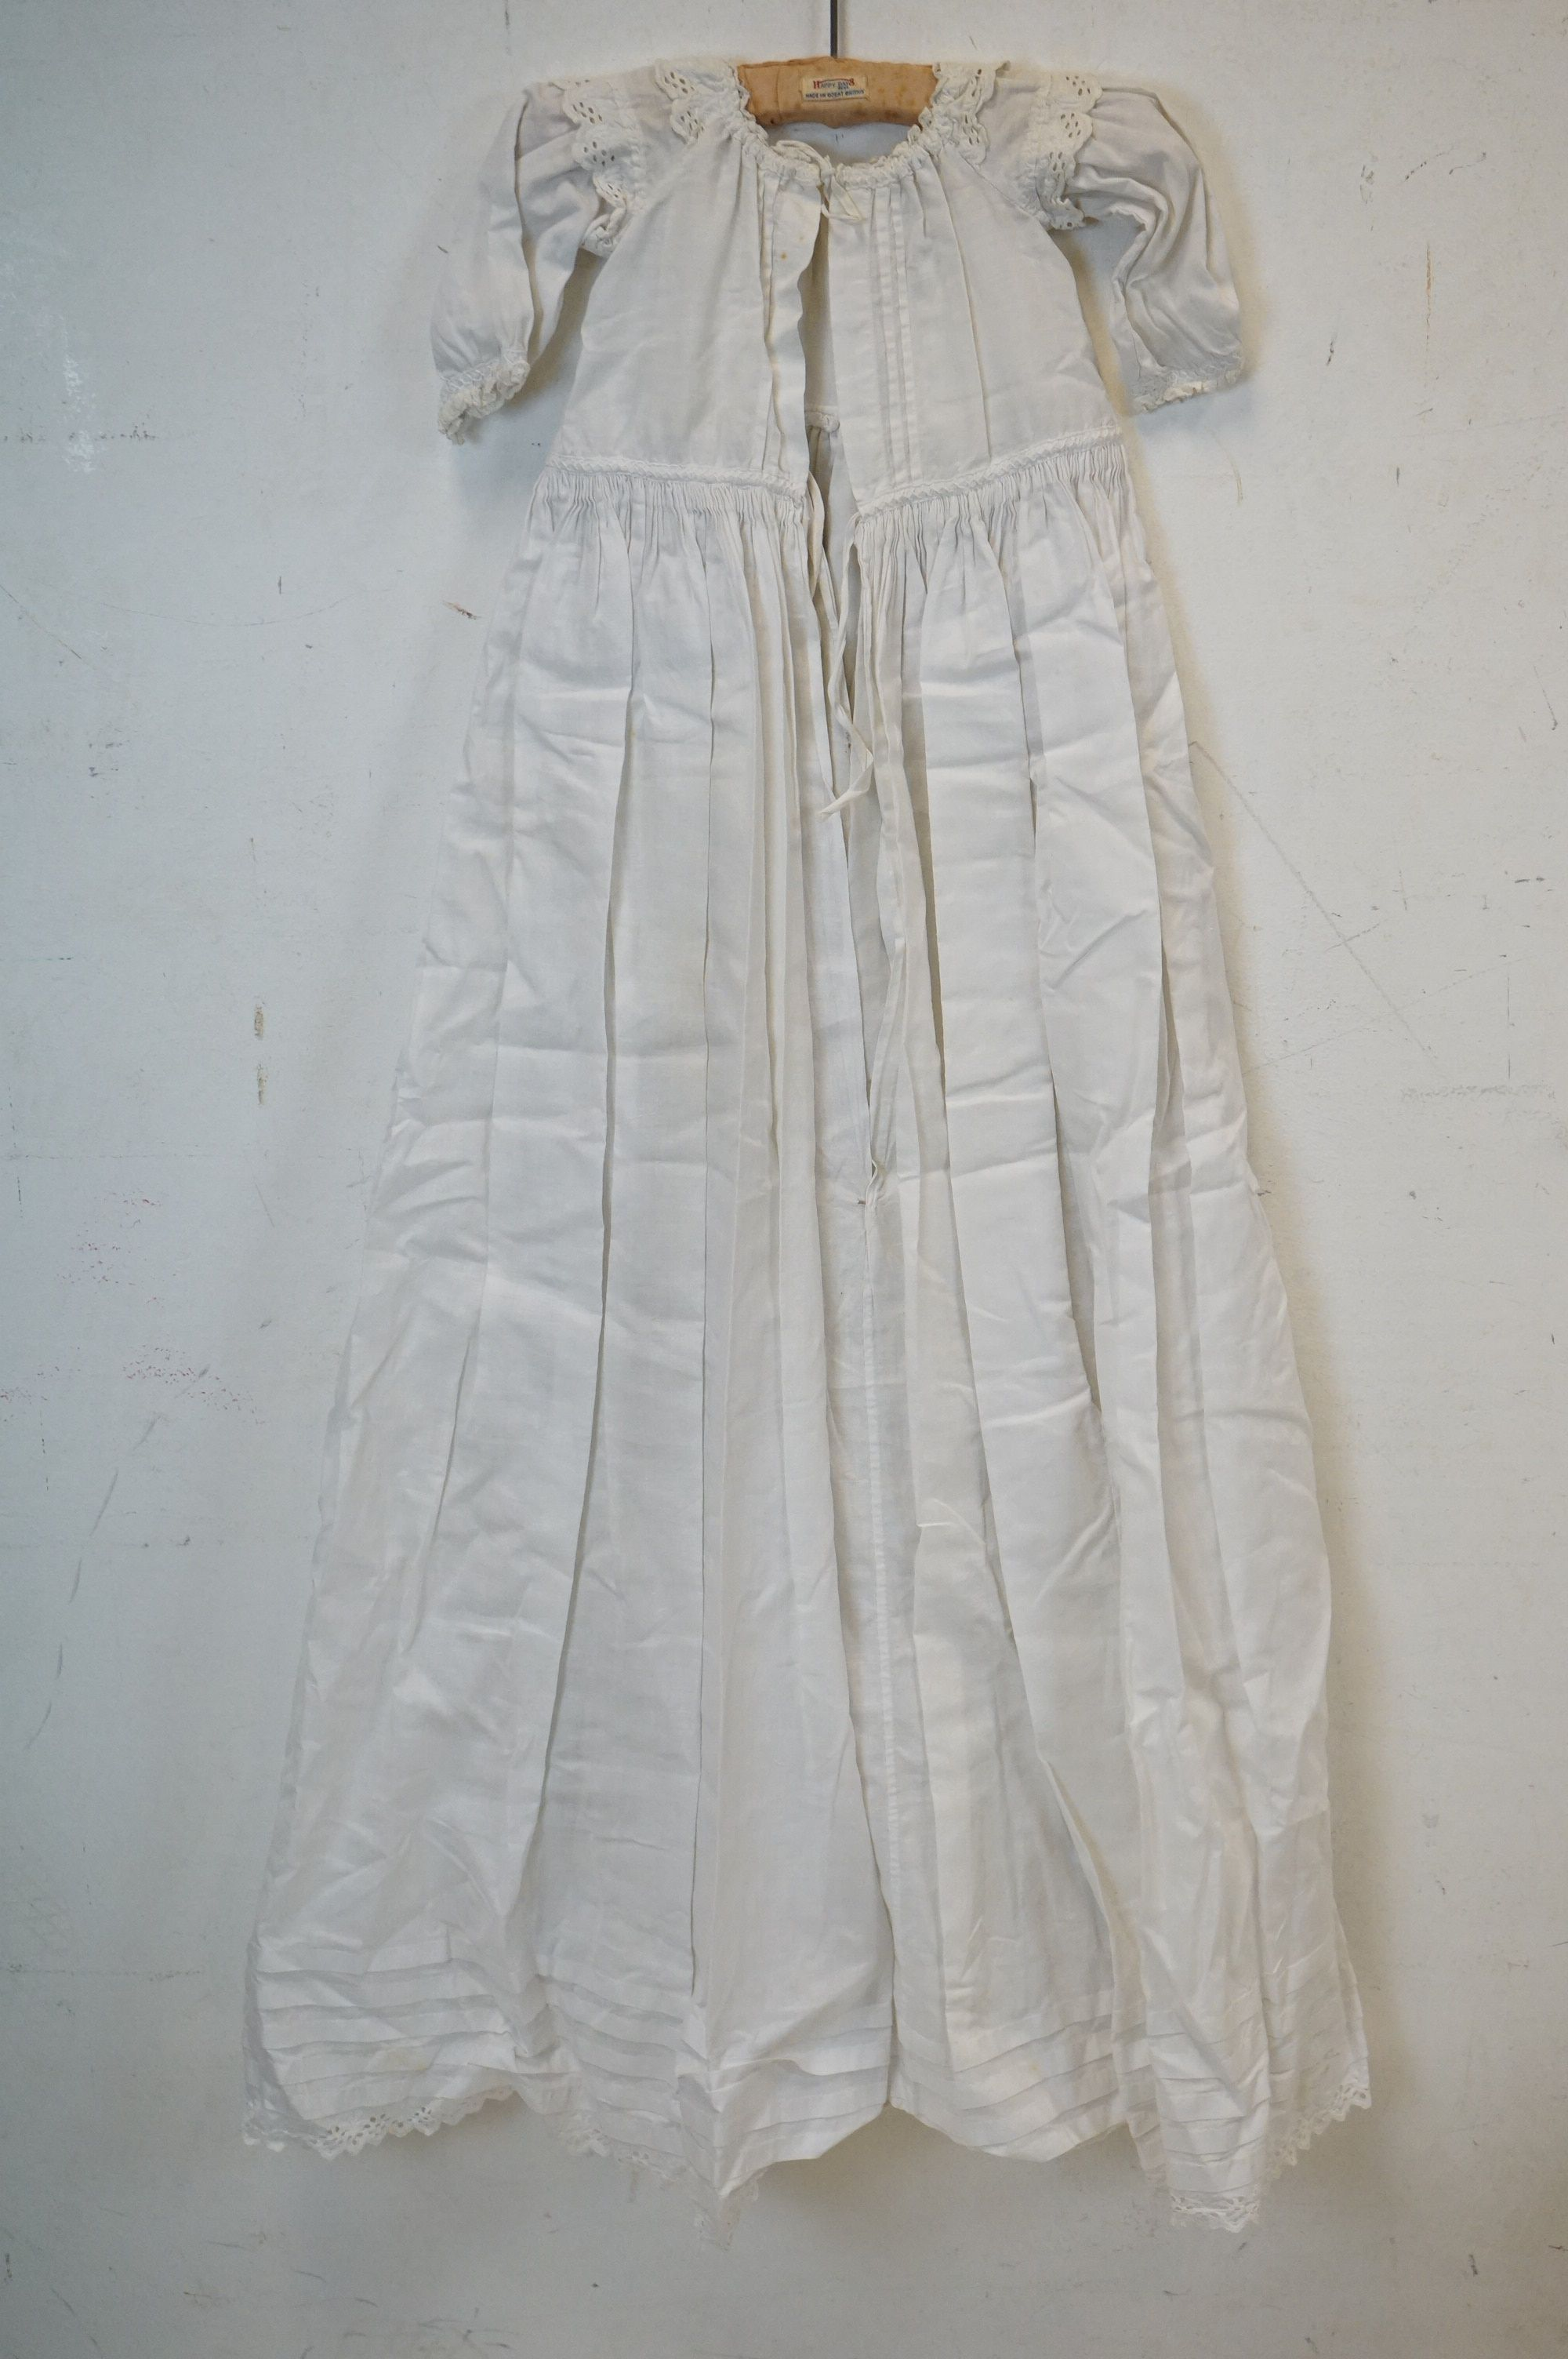 Six items of Victorian / Edwardian White Linen Clothing including Night Dresses, Underskirts and - Image 3 of 6